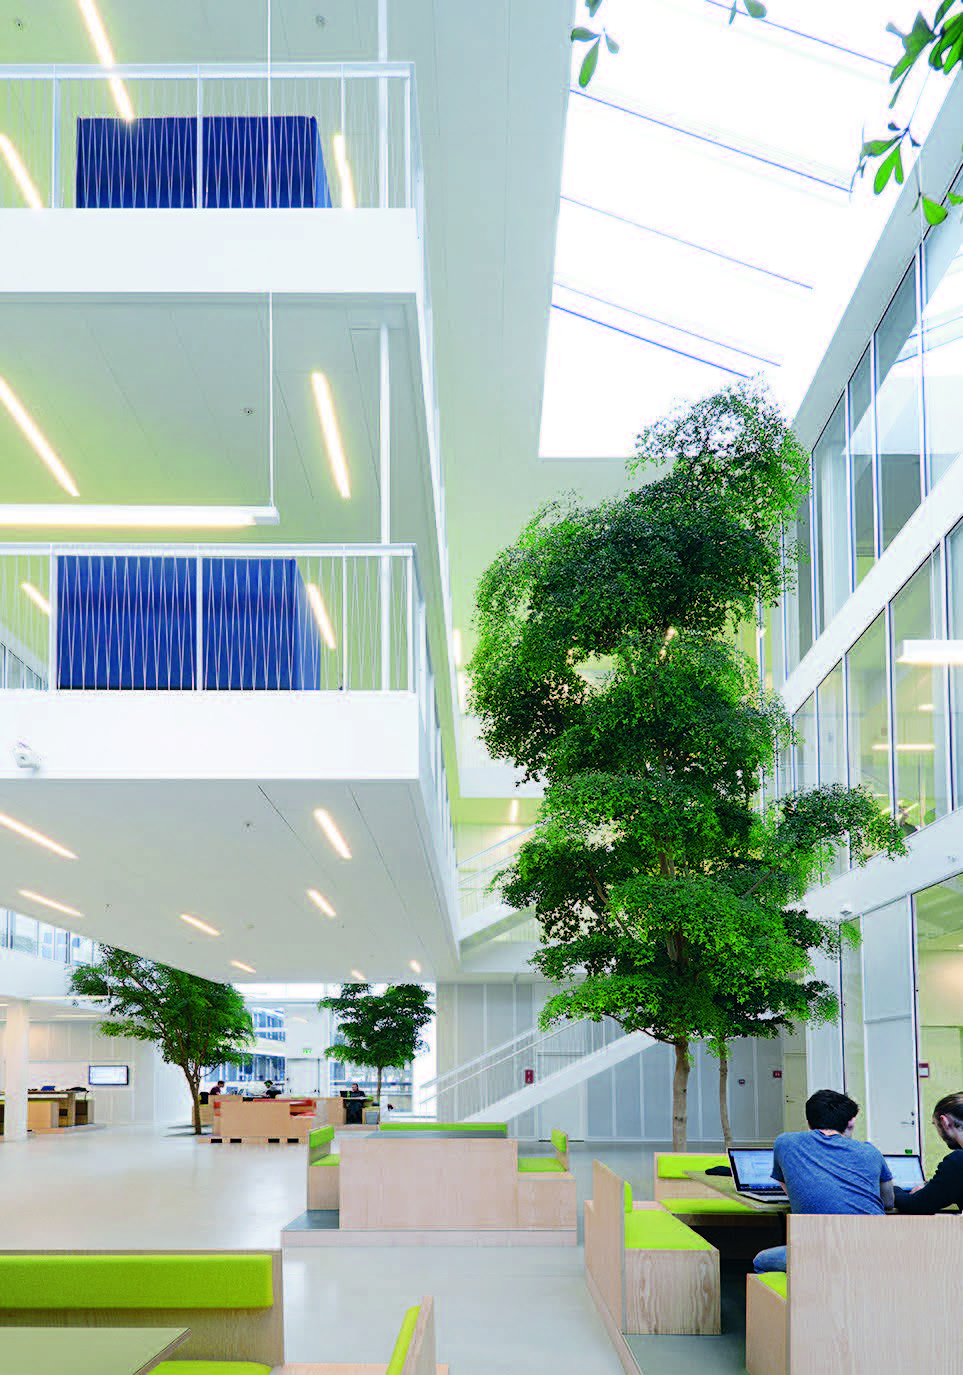 Perfect The DTU Compute: It Too Is On The University Campus For Scientific  Disciplines In Copenhagen. The Building, With A Glass Volume On Three  Levels, ...